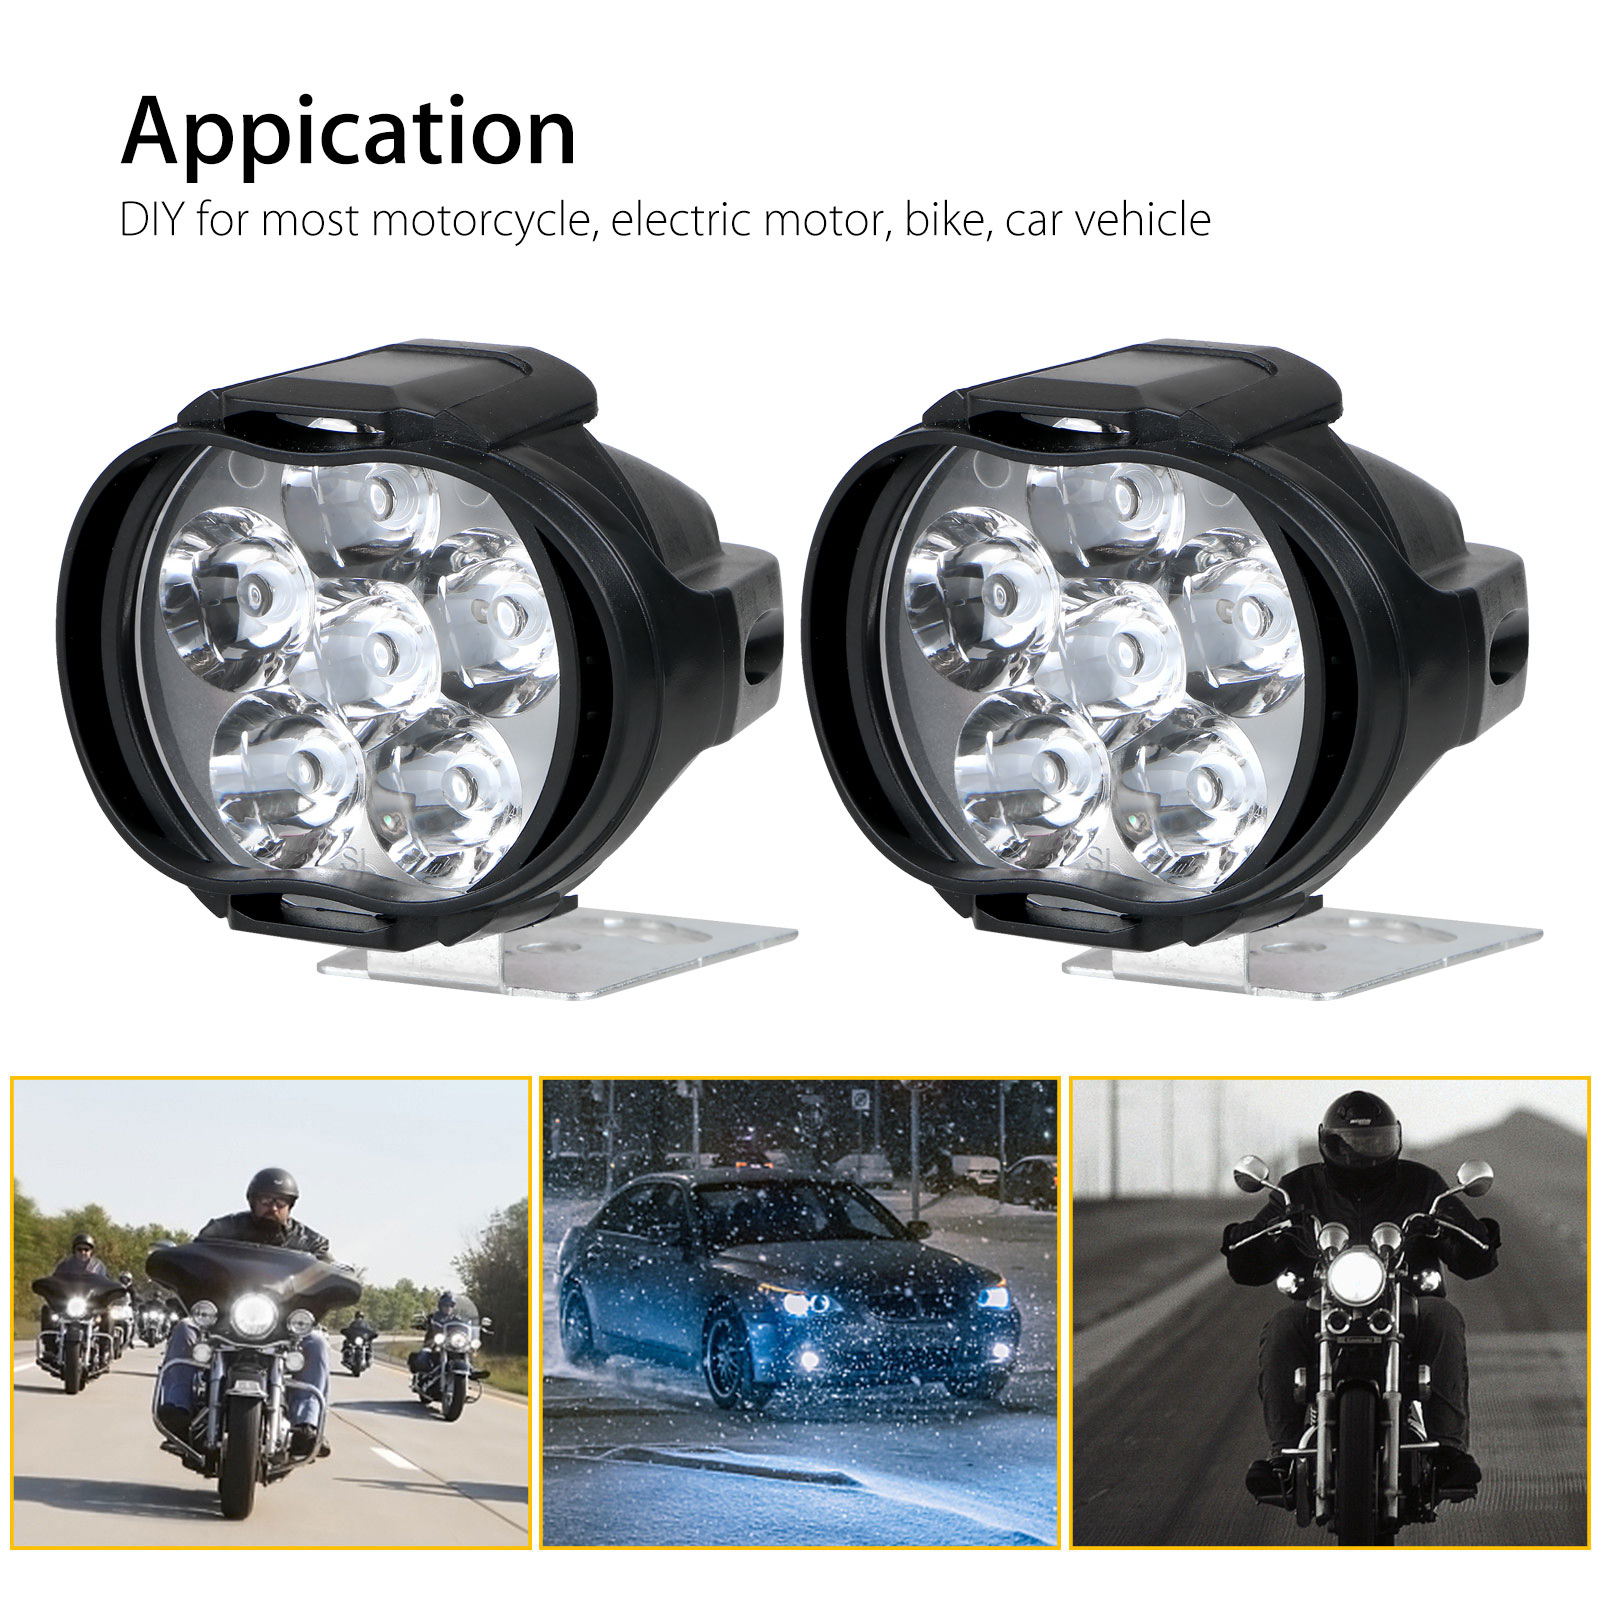 2Pcs-6LED-White-Motorcycle-Headlight-Spot-Light-DRL-Driving-Fog-Lamp-Waterproof thumbnail 5